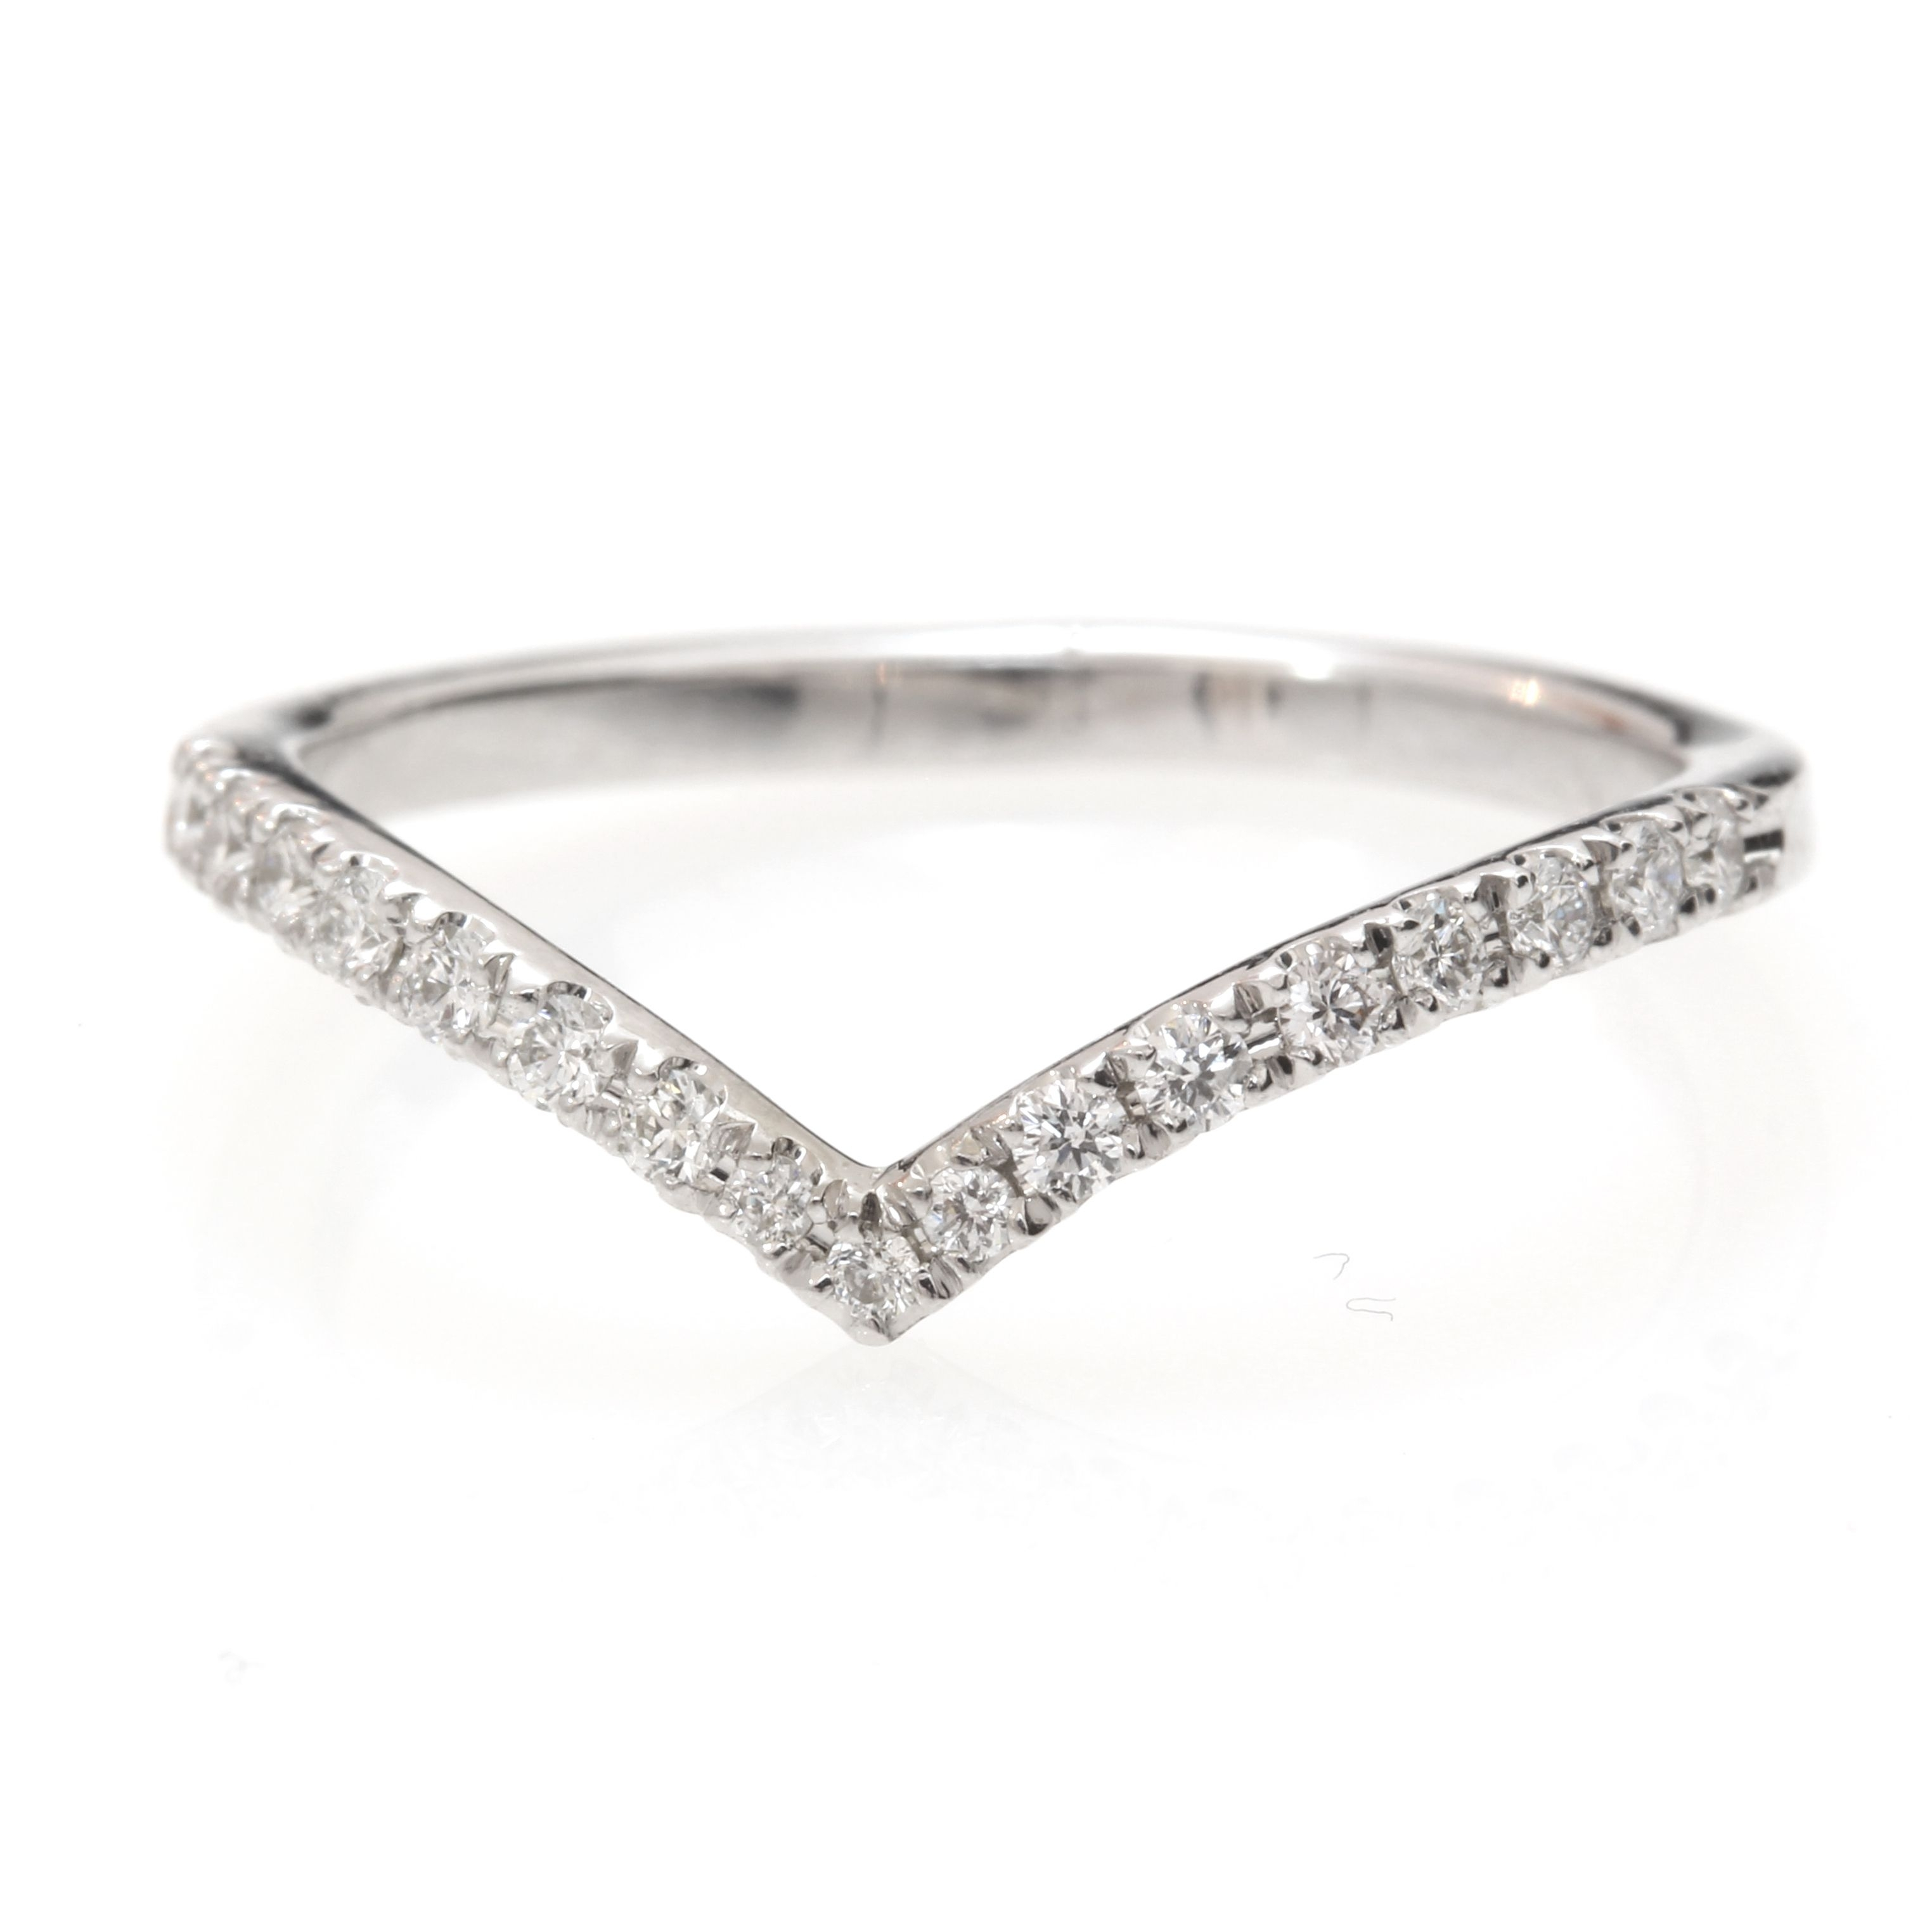 Chevron Diamond Ring, Diamond V Ring With Pave Diamonds, Diamond In Latest Chevron Style Diamond Rings (View 8 of 15)